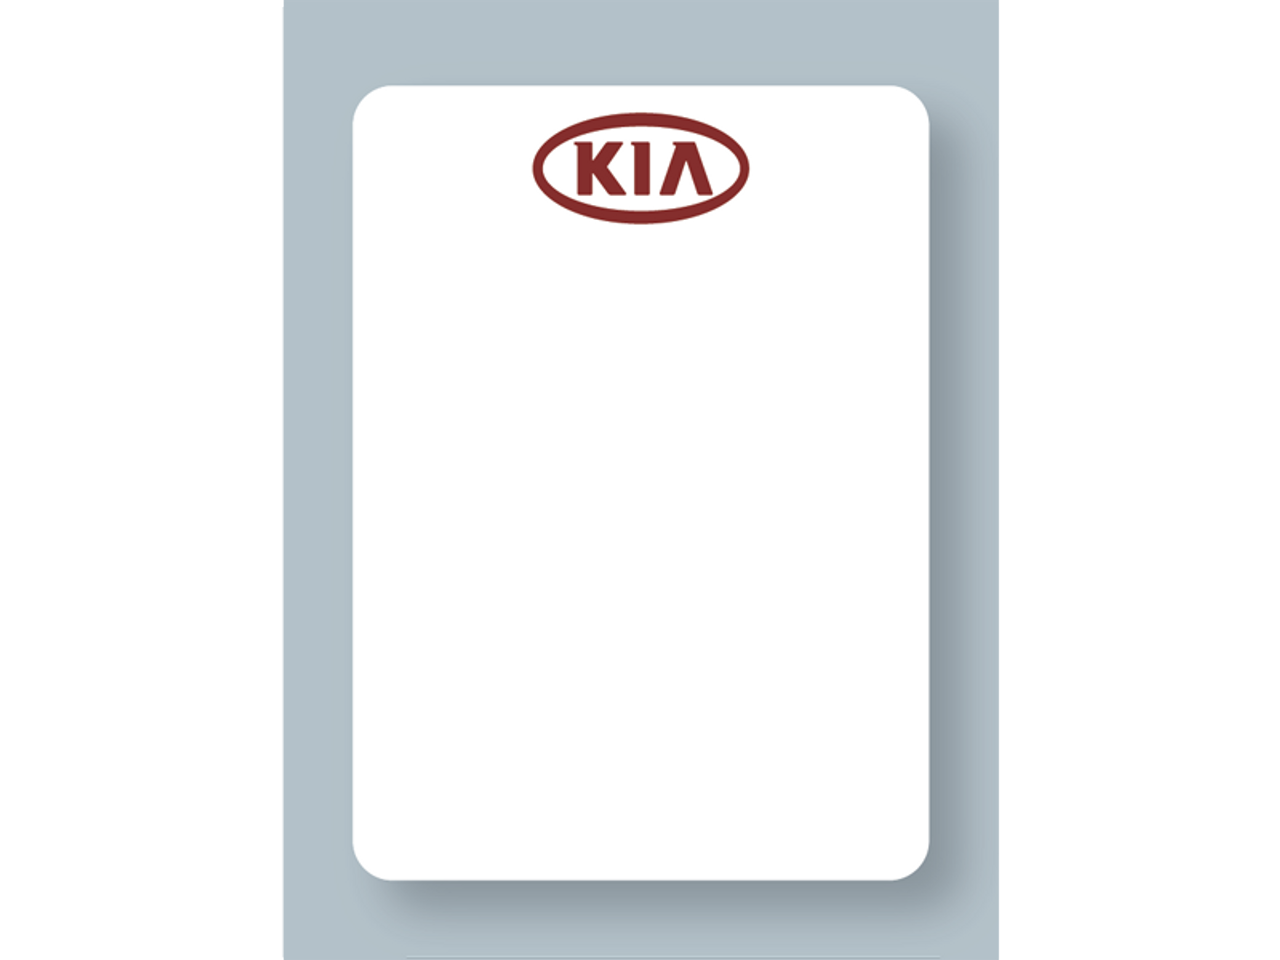 Kia Reminder Stickers - Printer Compatible - White Low-Tac